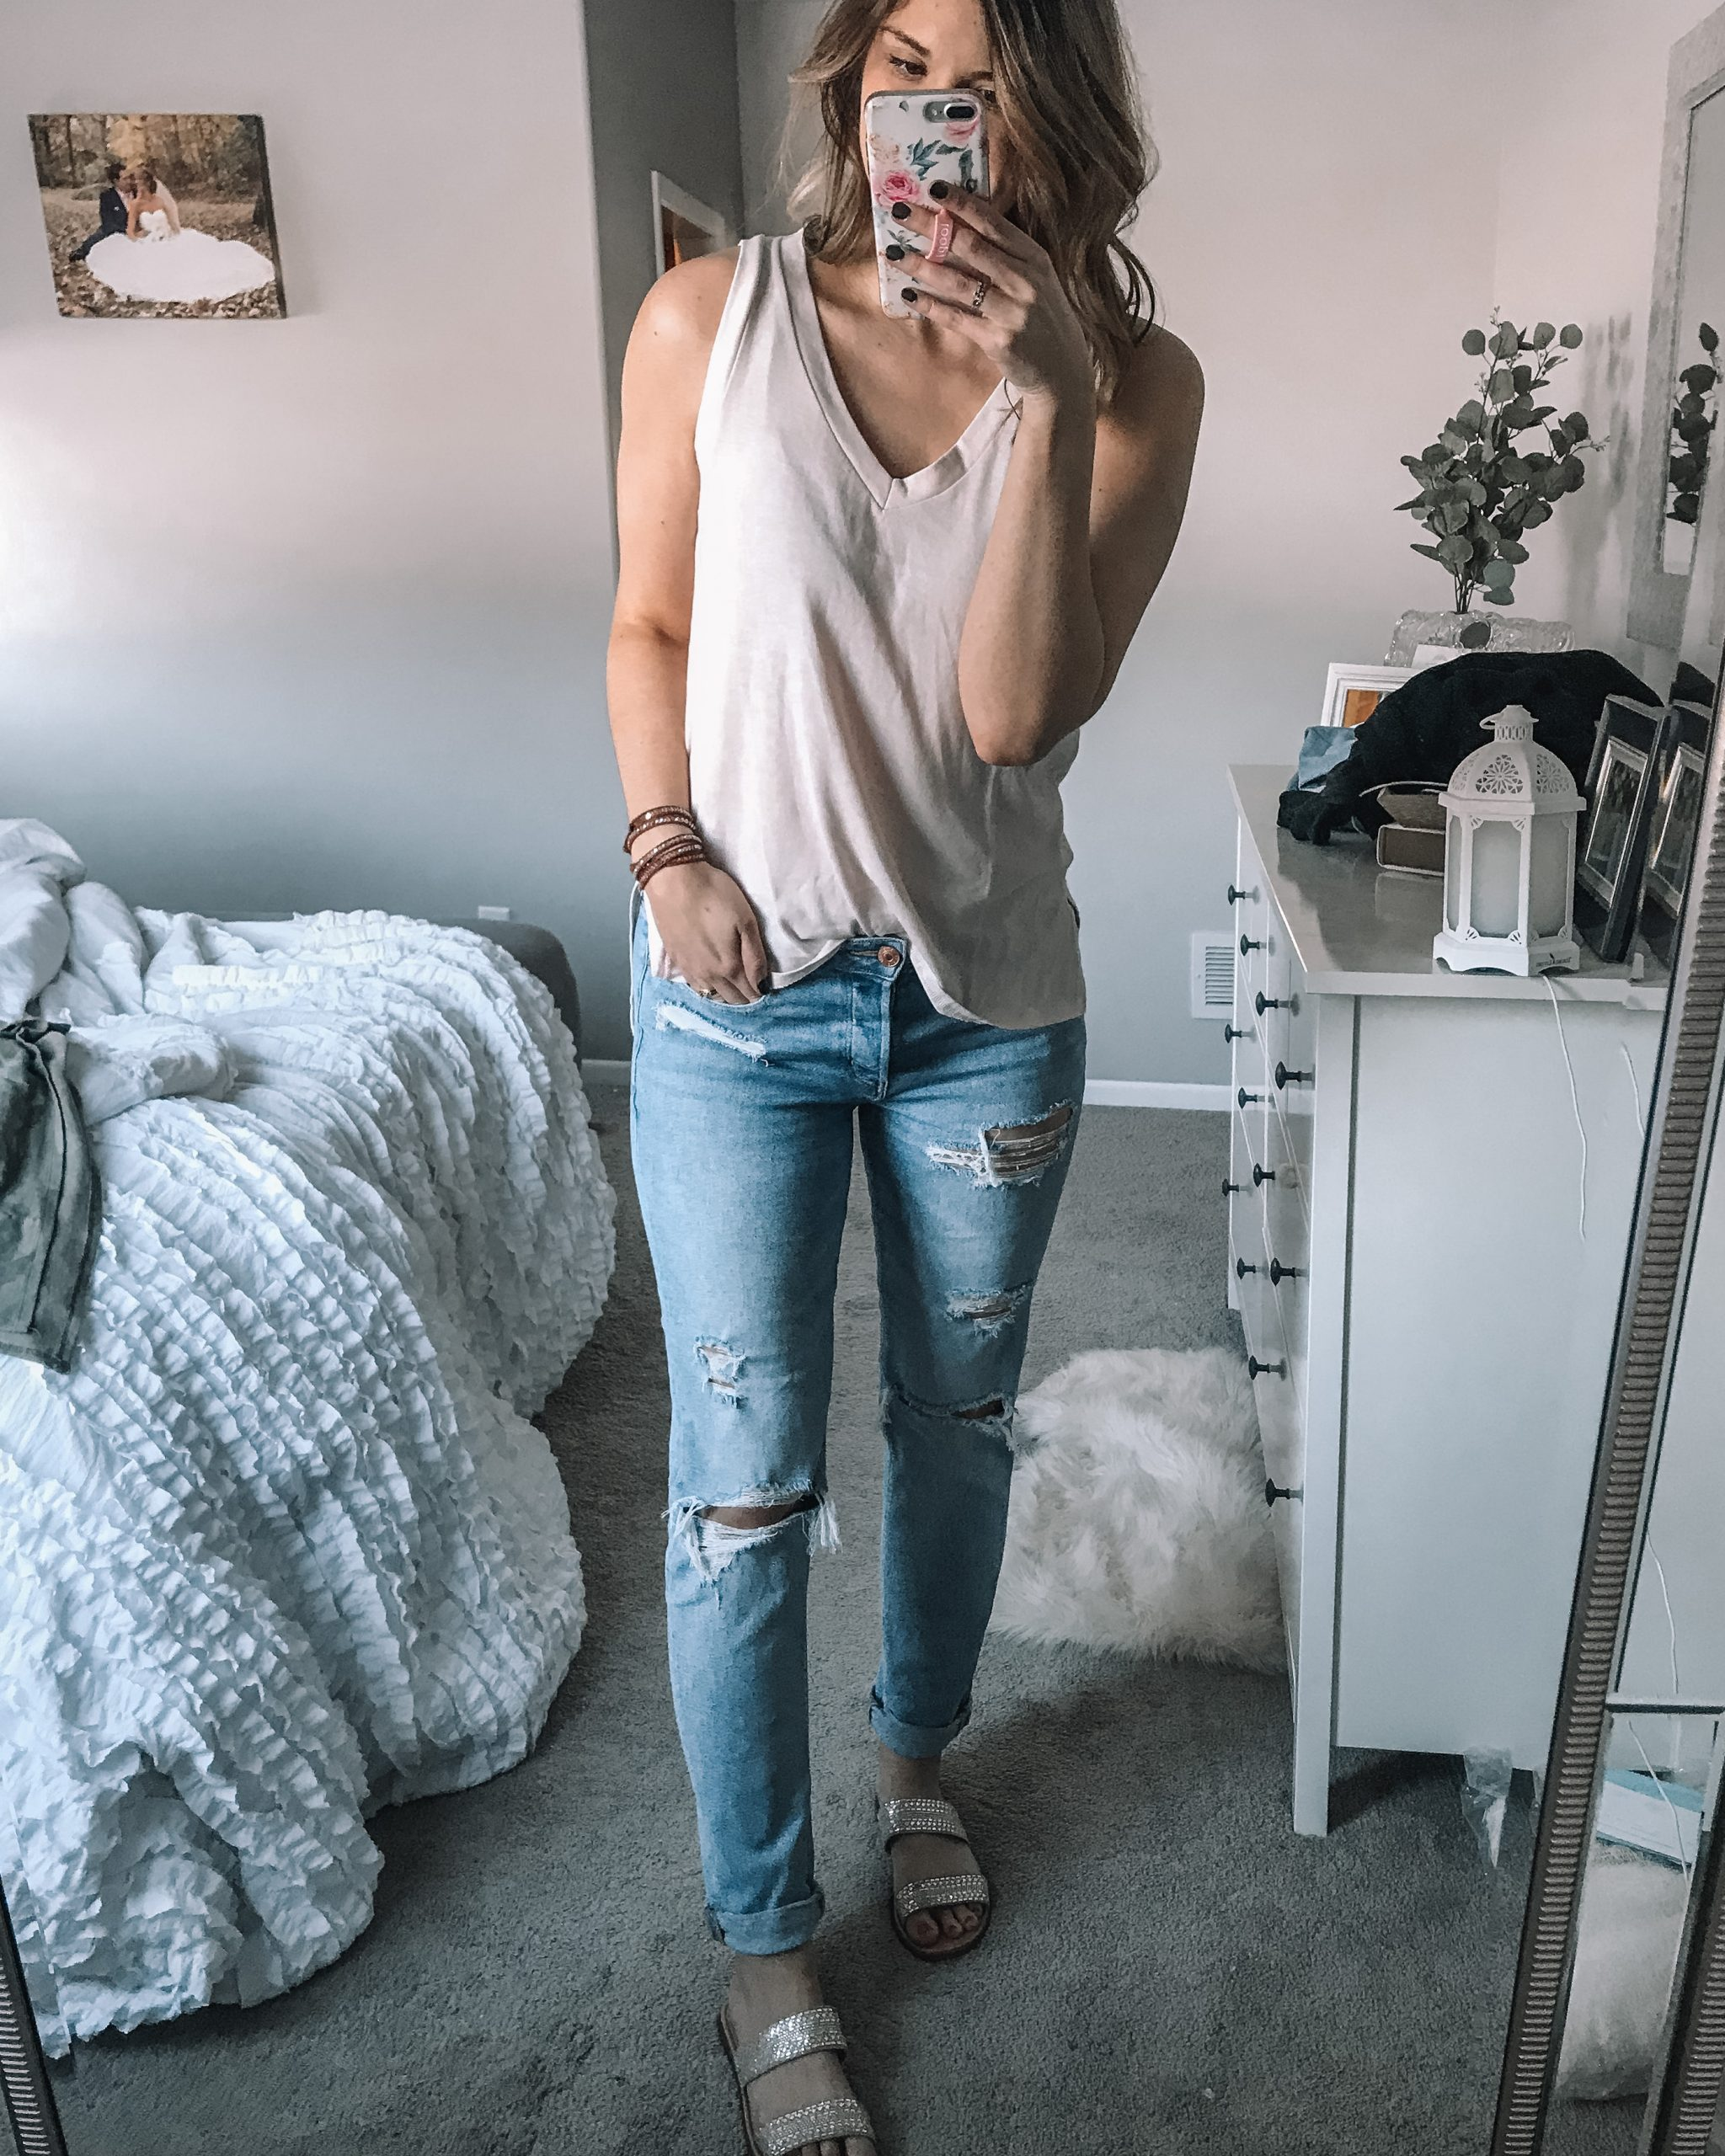 ivory v neck tank top from aerie tomgirl stretch jeans rhinestone slide sandals from target